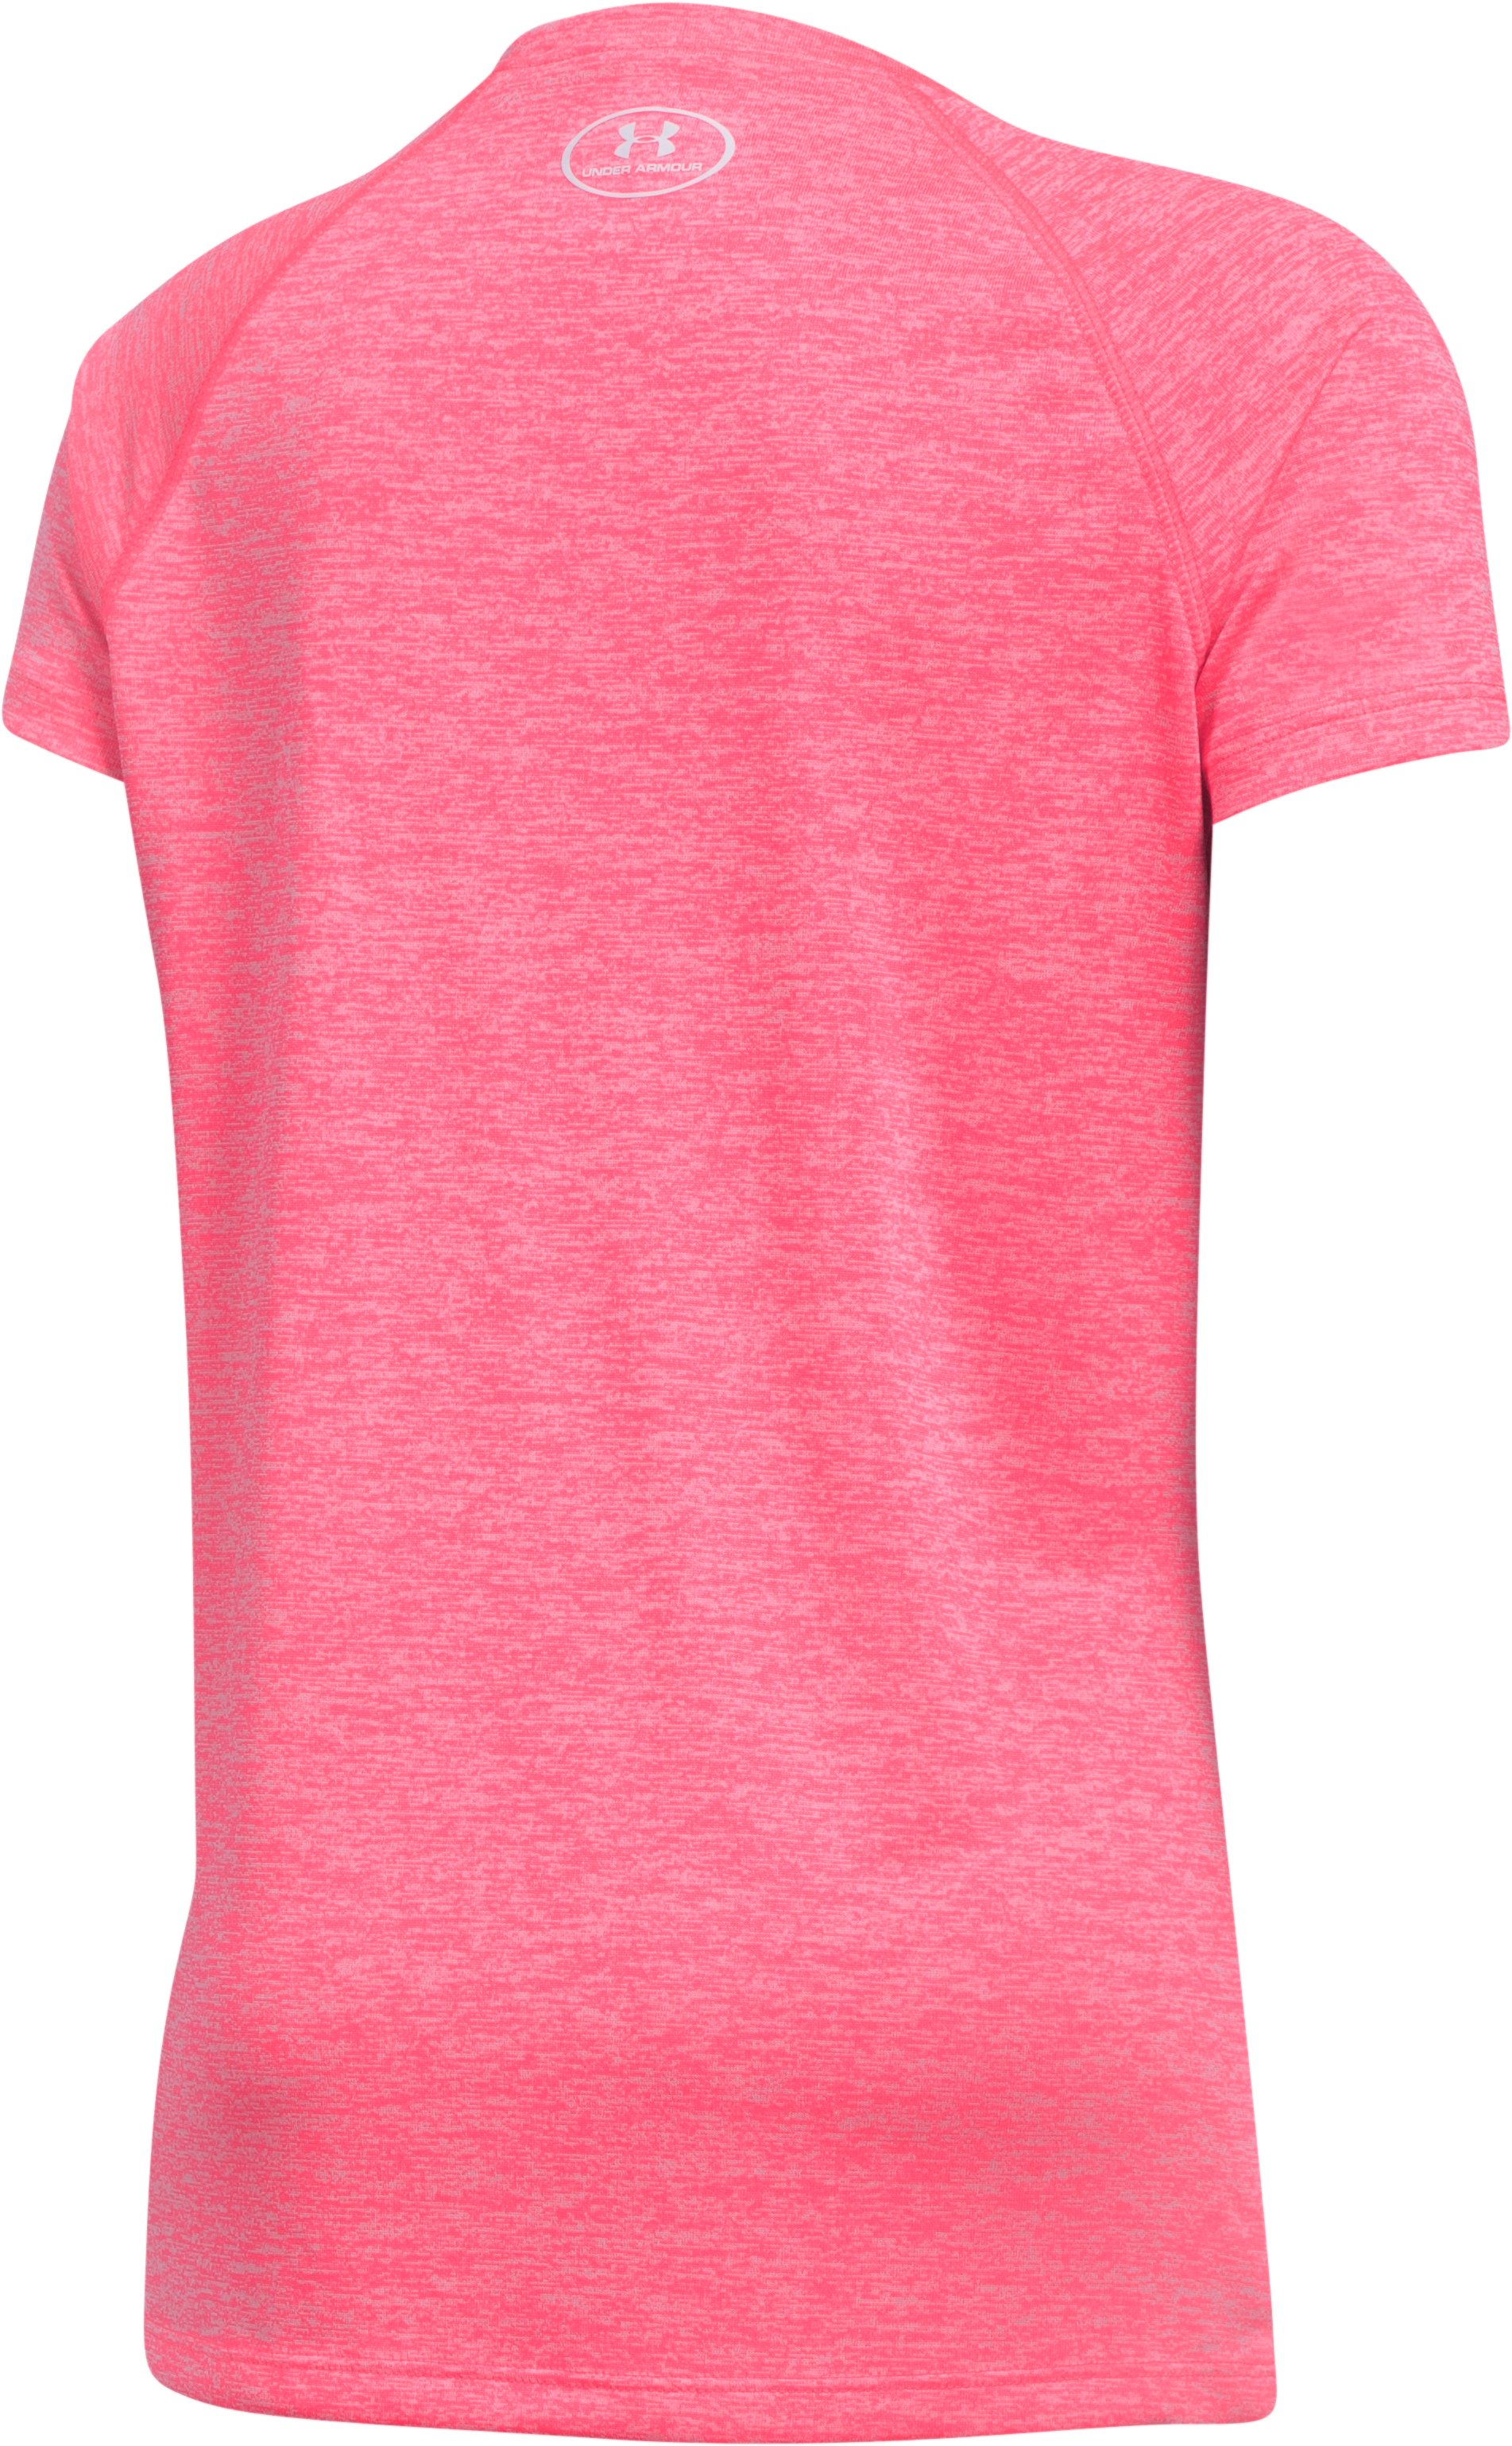 Girls' UA Big Logo Short Sleeve T-Shirt, PENTA PINK,